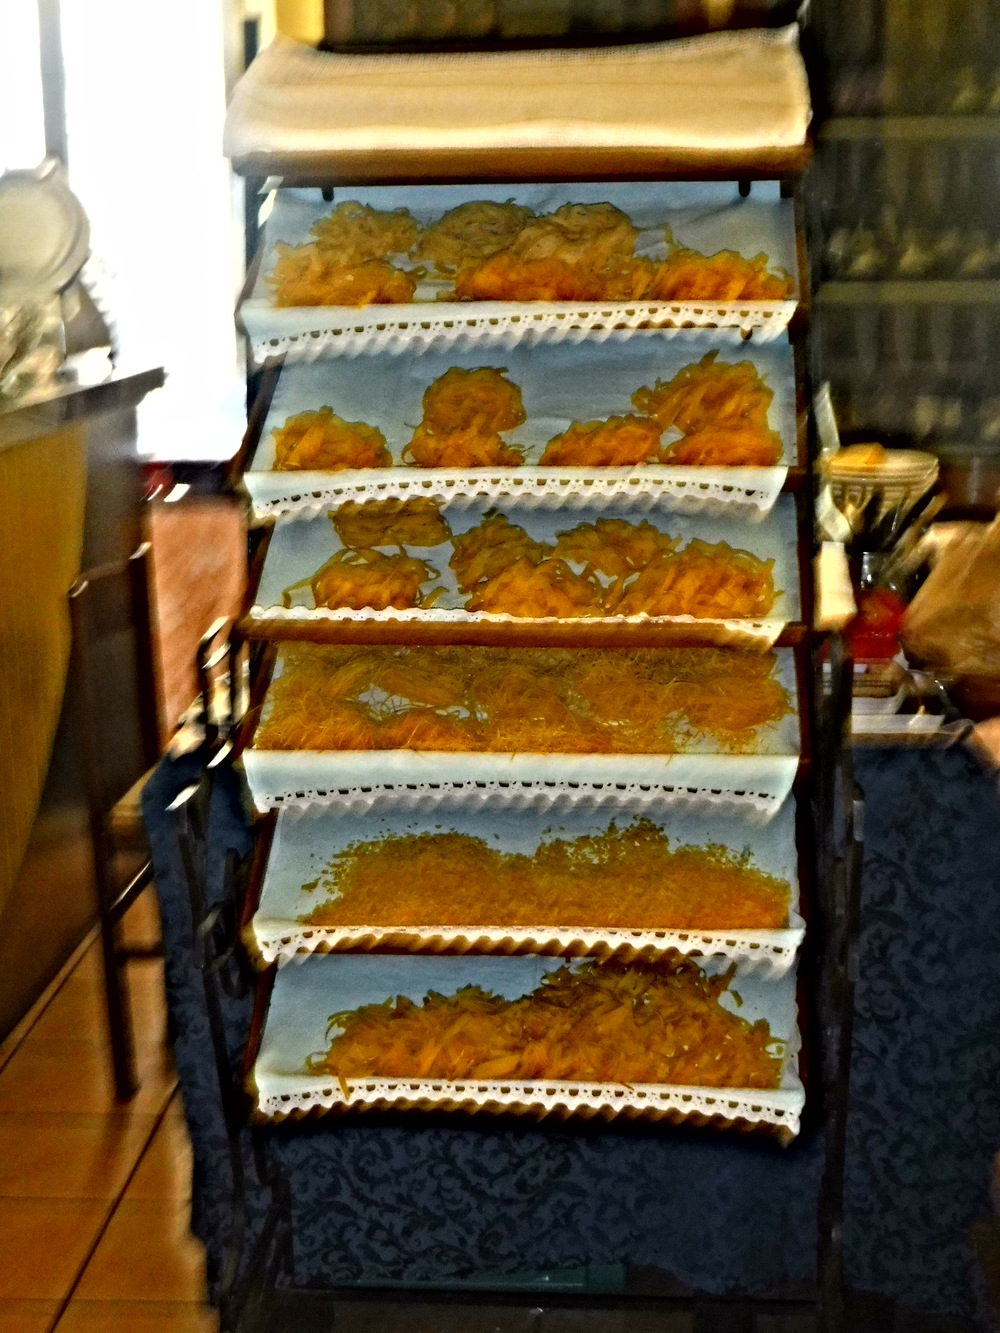 3. Homemade pasta drying on linen covered trays at Ristorante Da Enzo.JPG